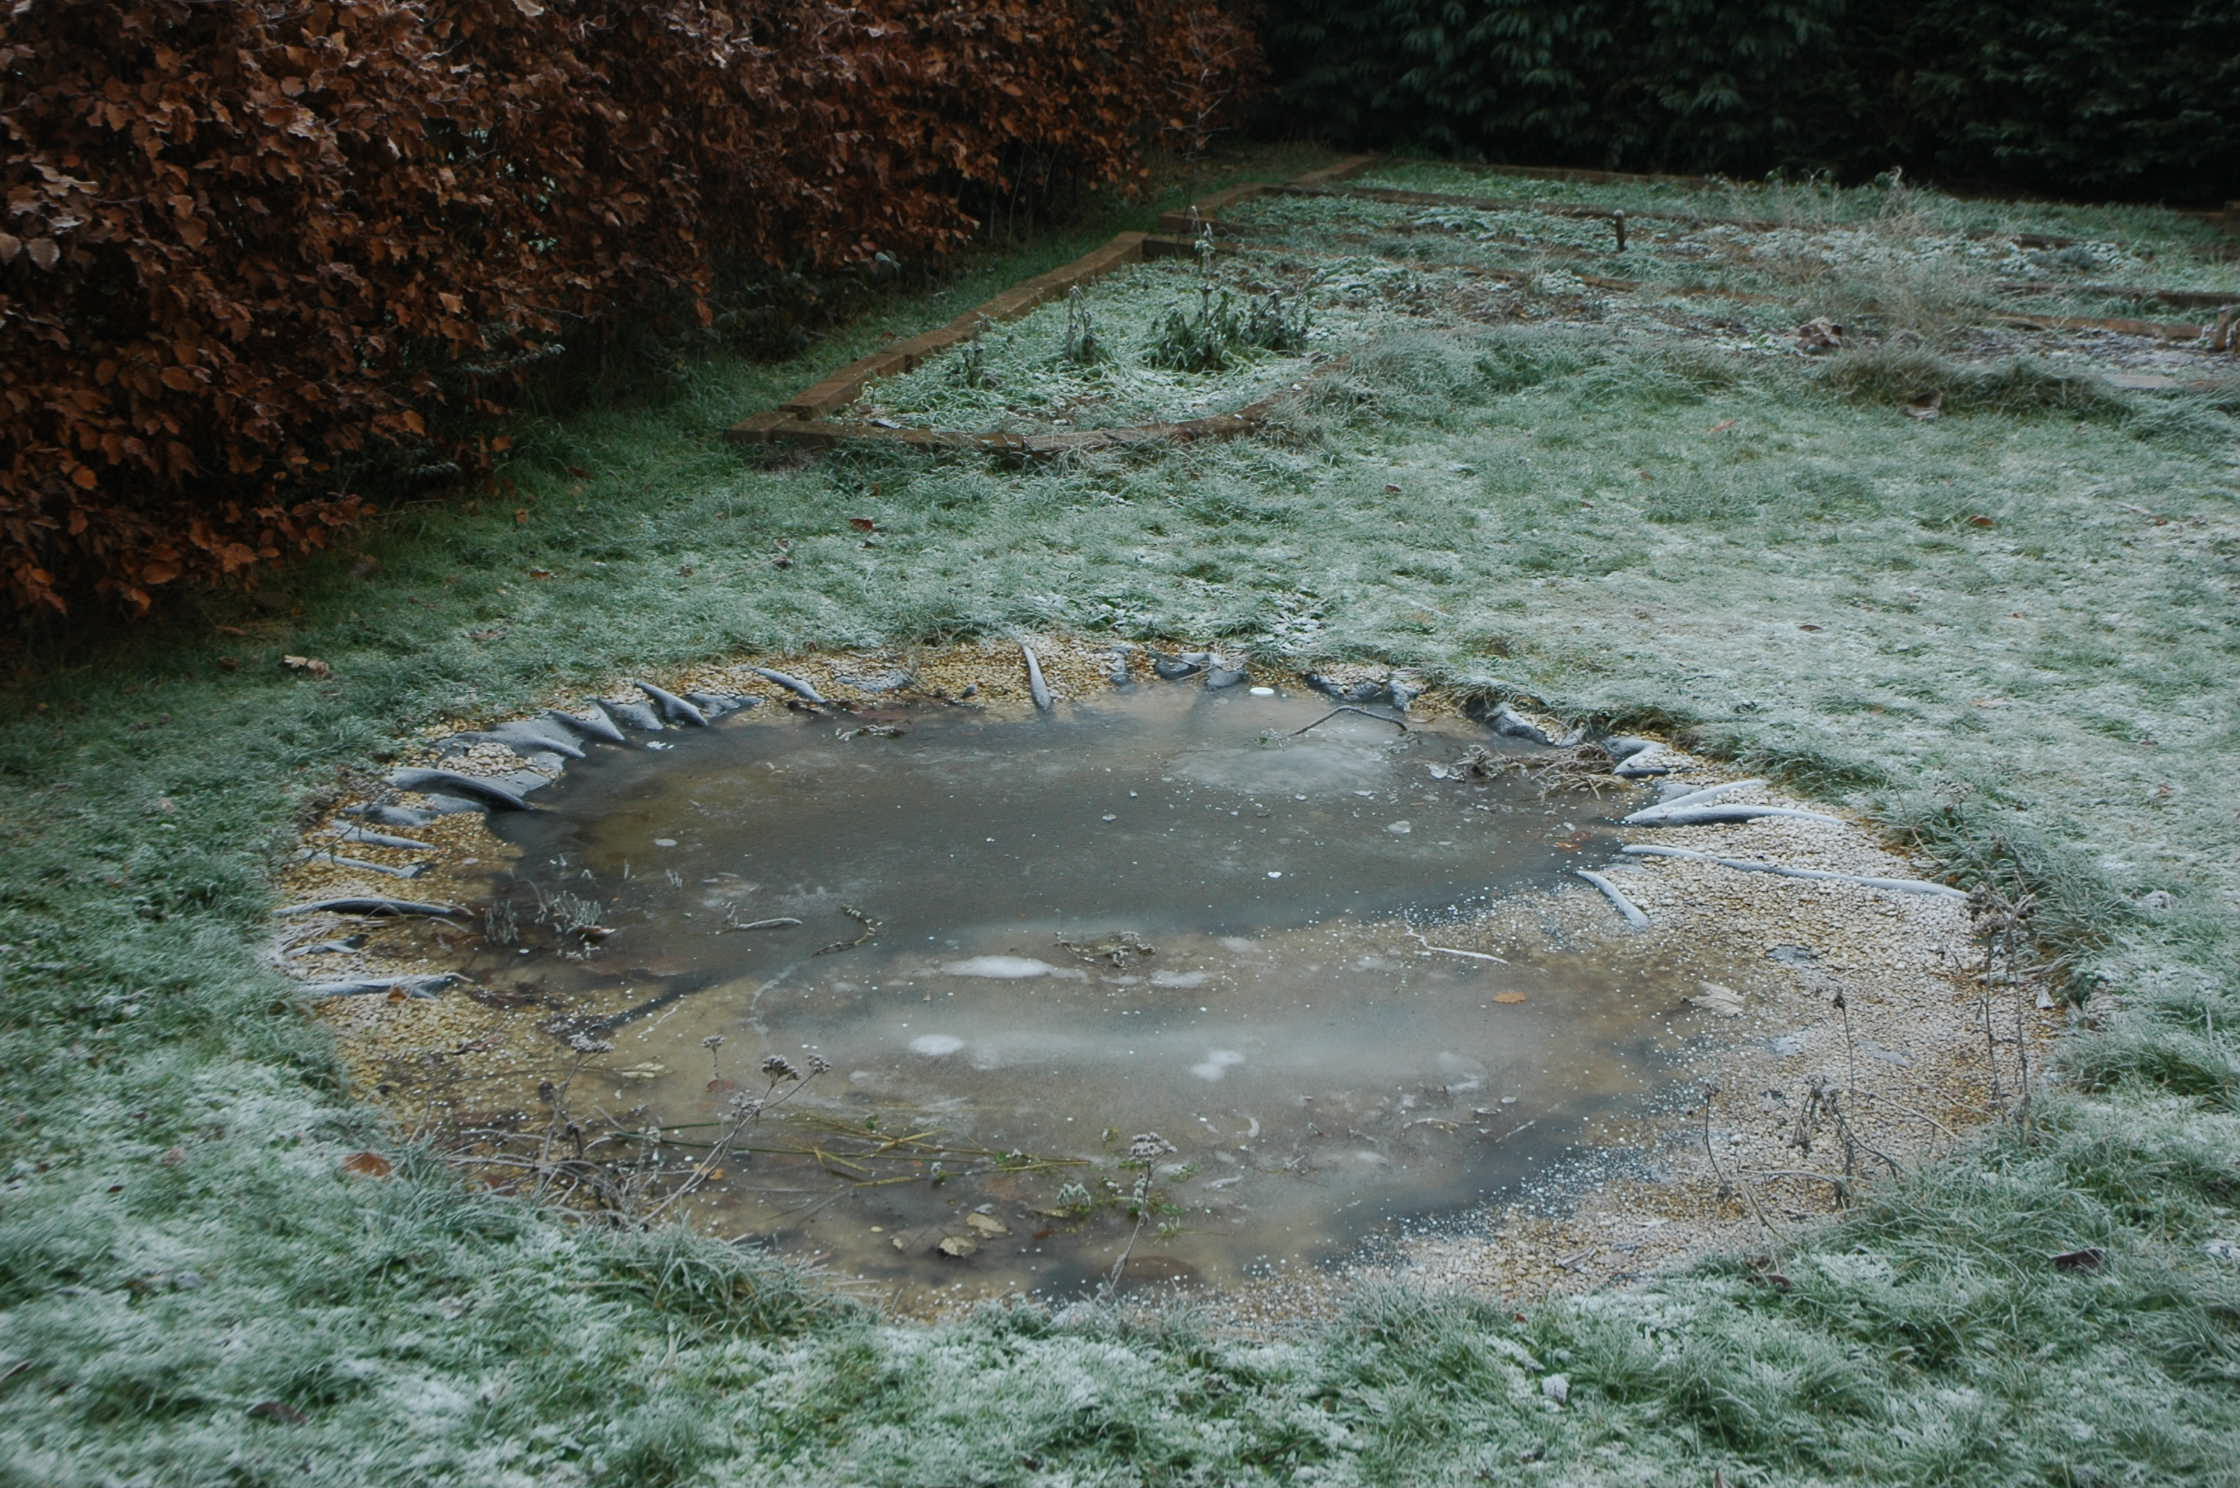 How To Empty Backyard Pond : The new pond today is completely frozen over beneath the ice, the